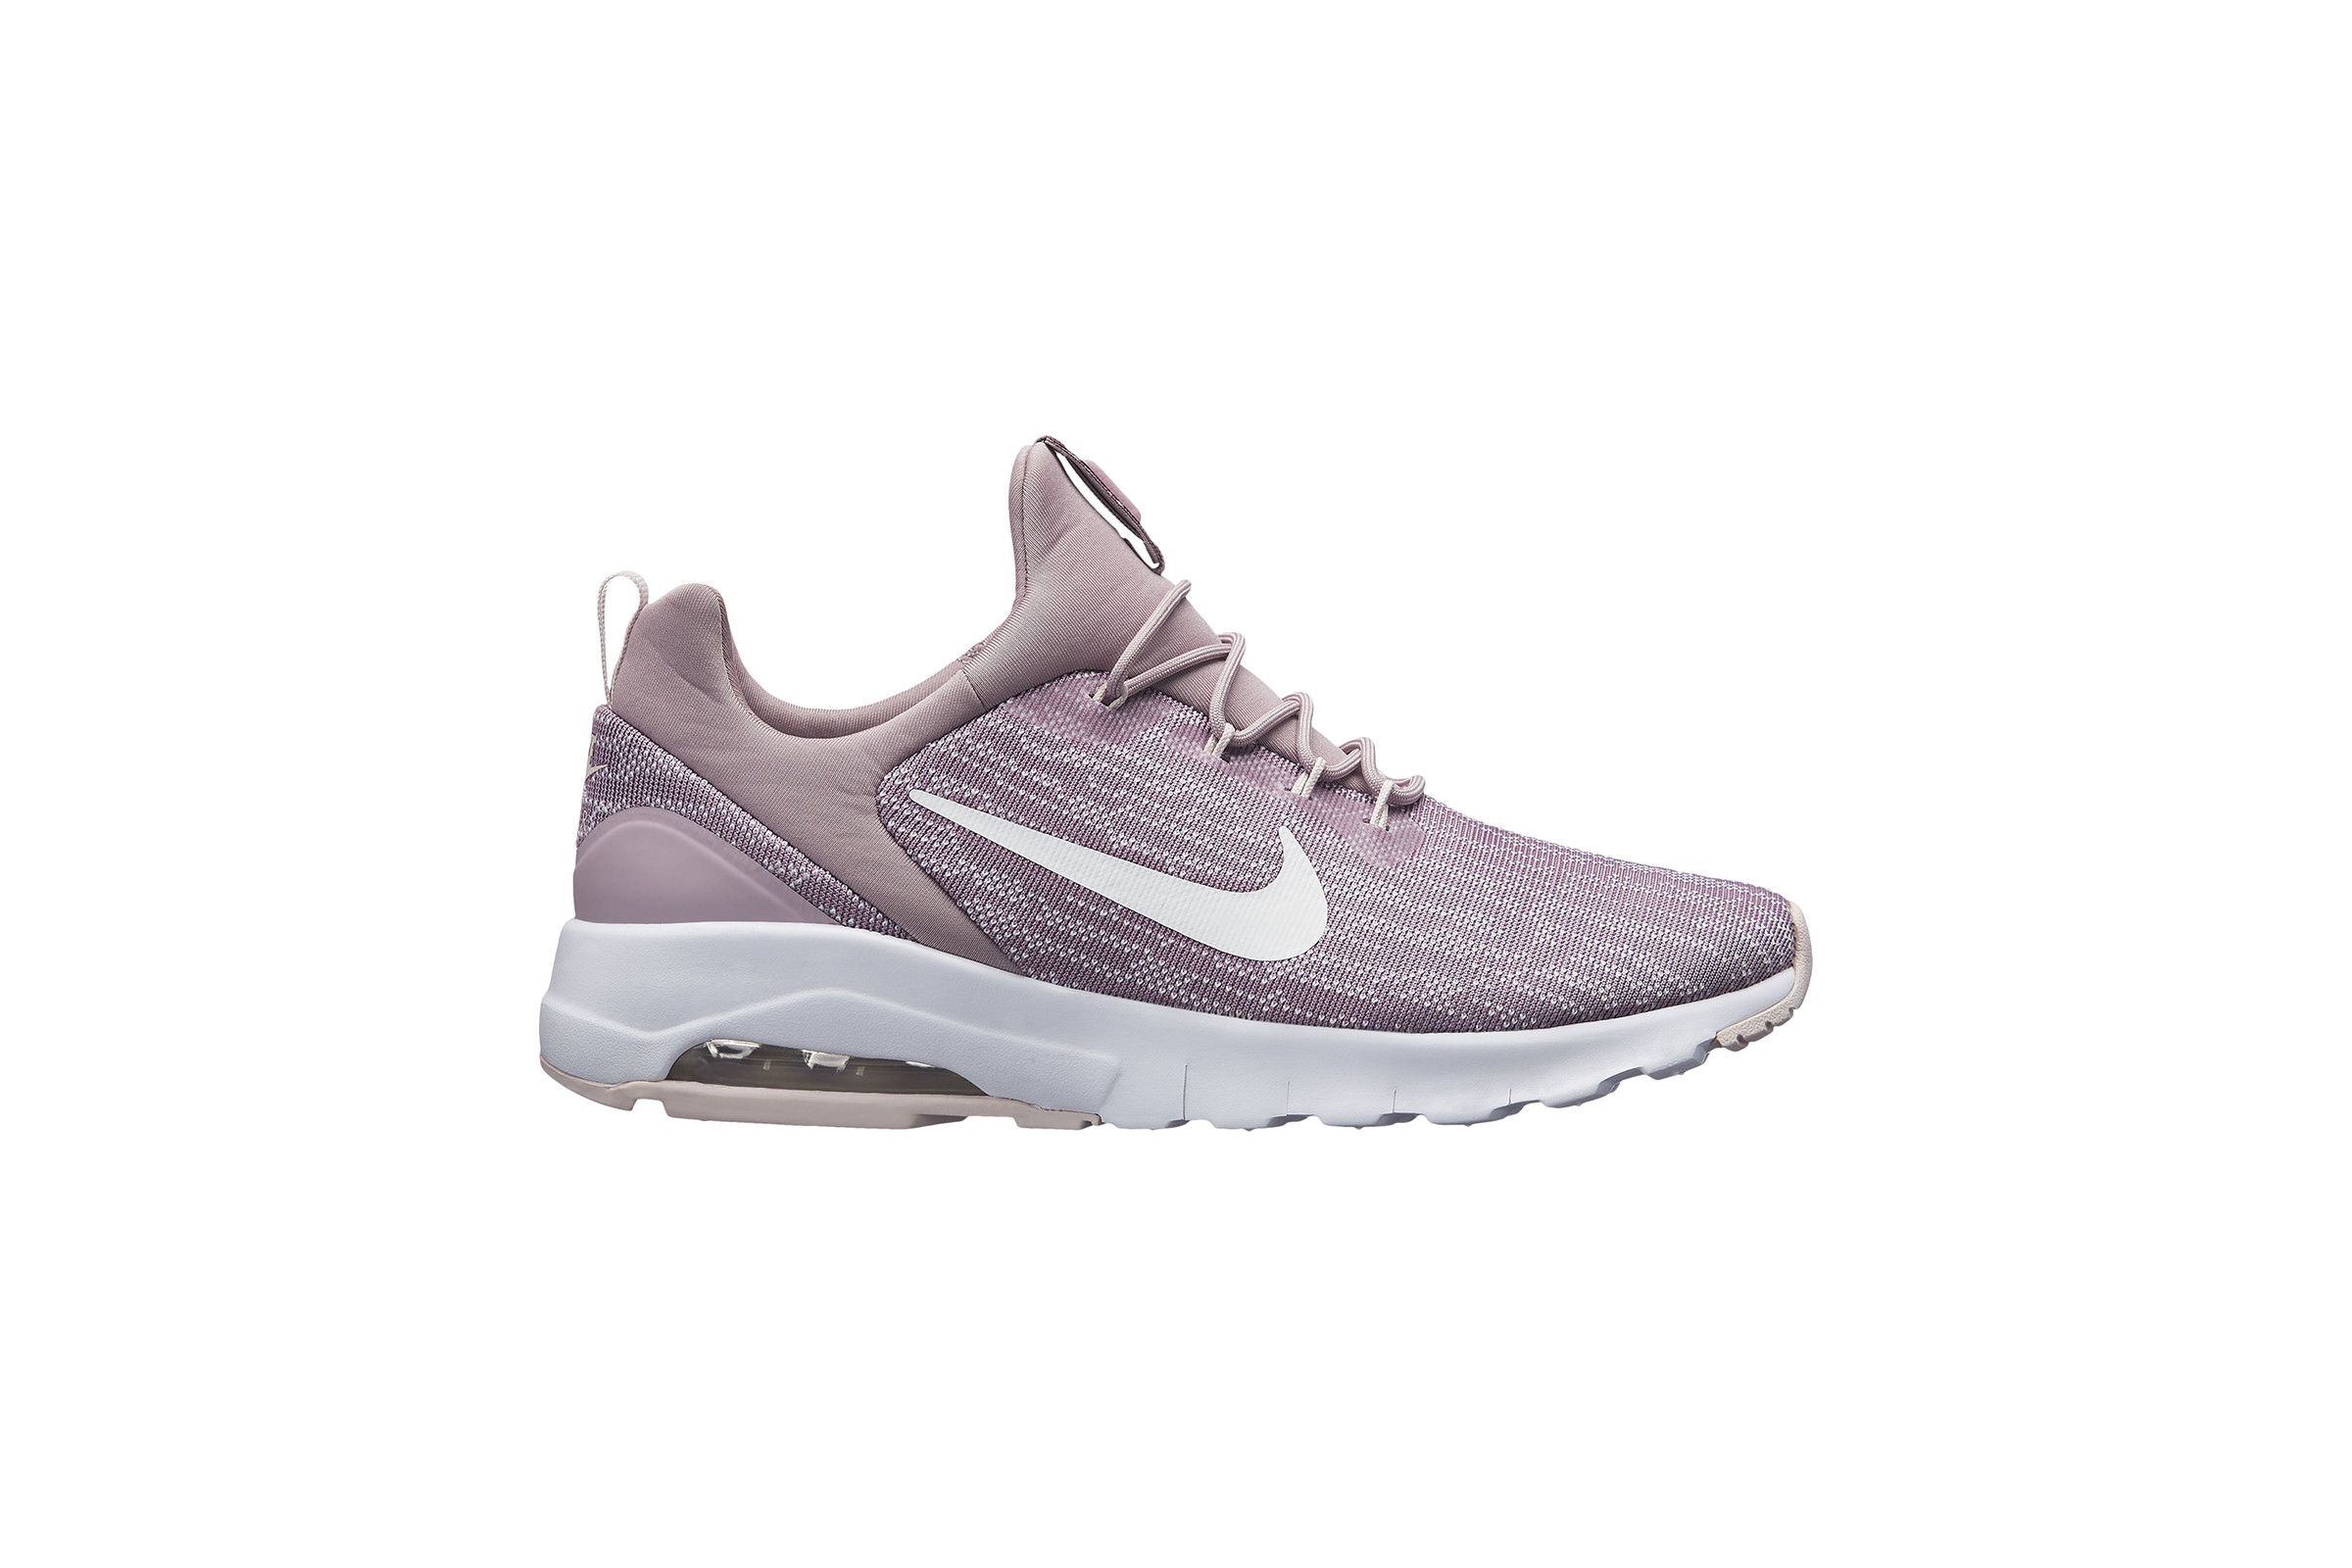 low priced 0caa5 dbd3c usa mode nike air max invigor dam sport street skor vit rea 75b98 848e6   promo code for nike. 1 099 wmns air max motion racer. dam a07d3 1943c